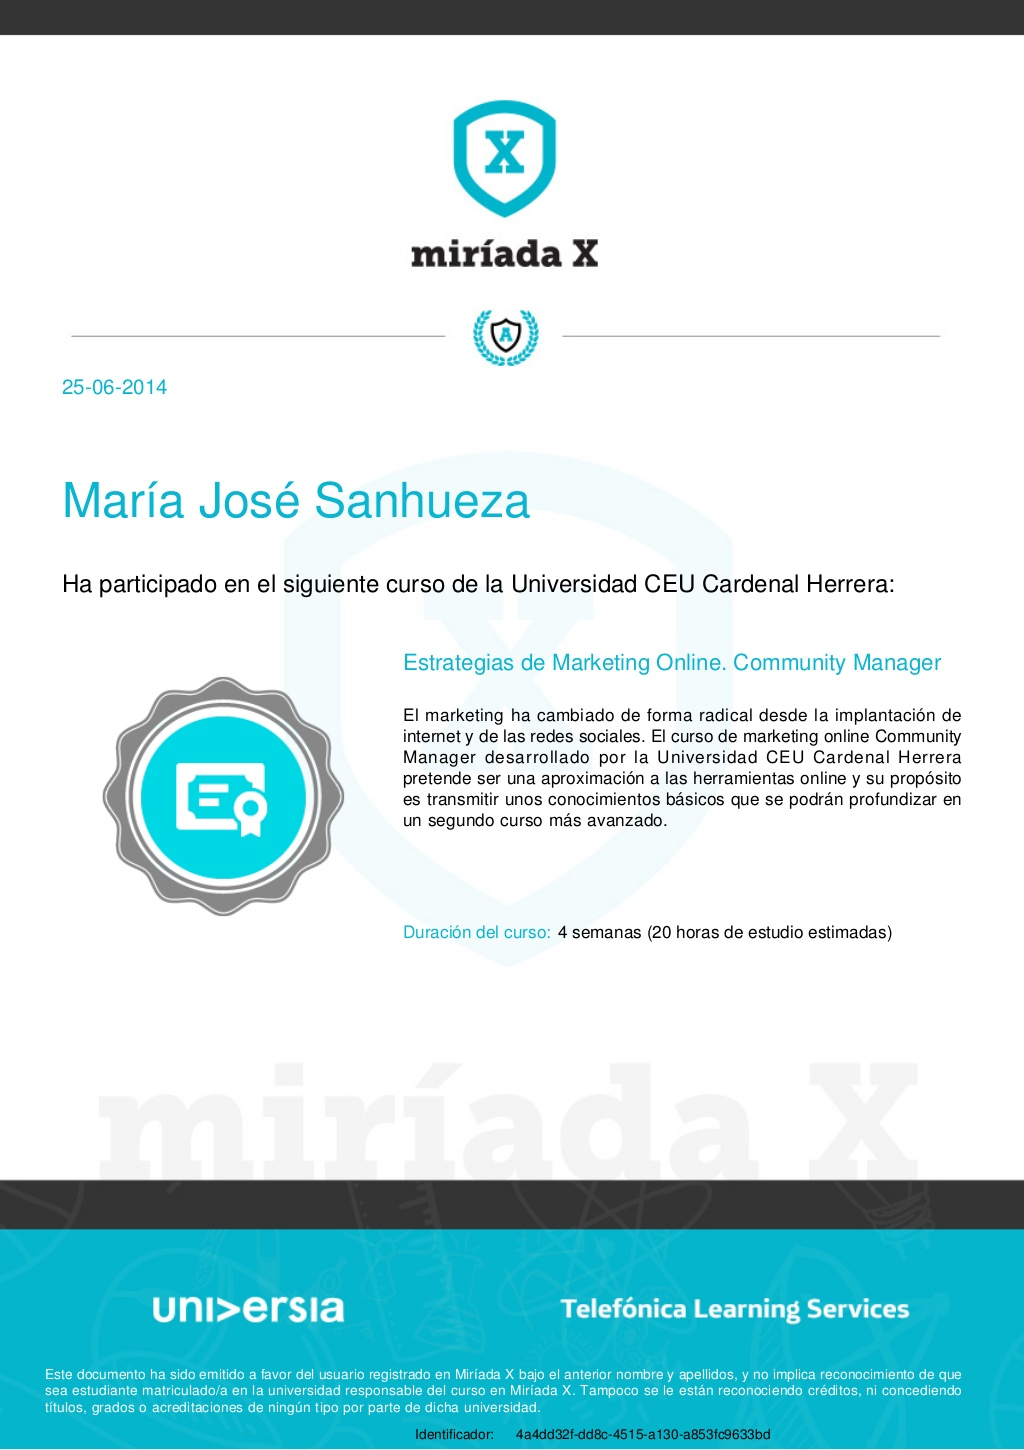 Curso Estrategias de Marketing Online. Universidad CEU Cardenal Herrera